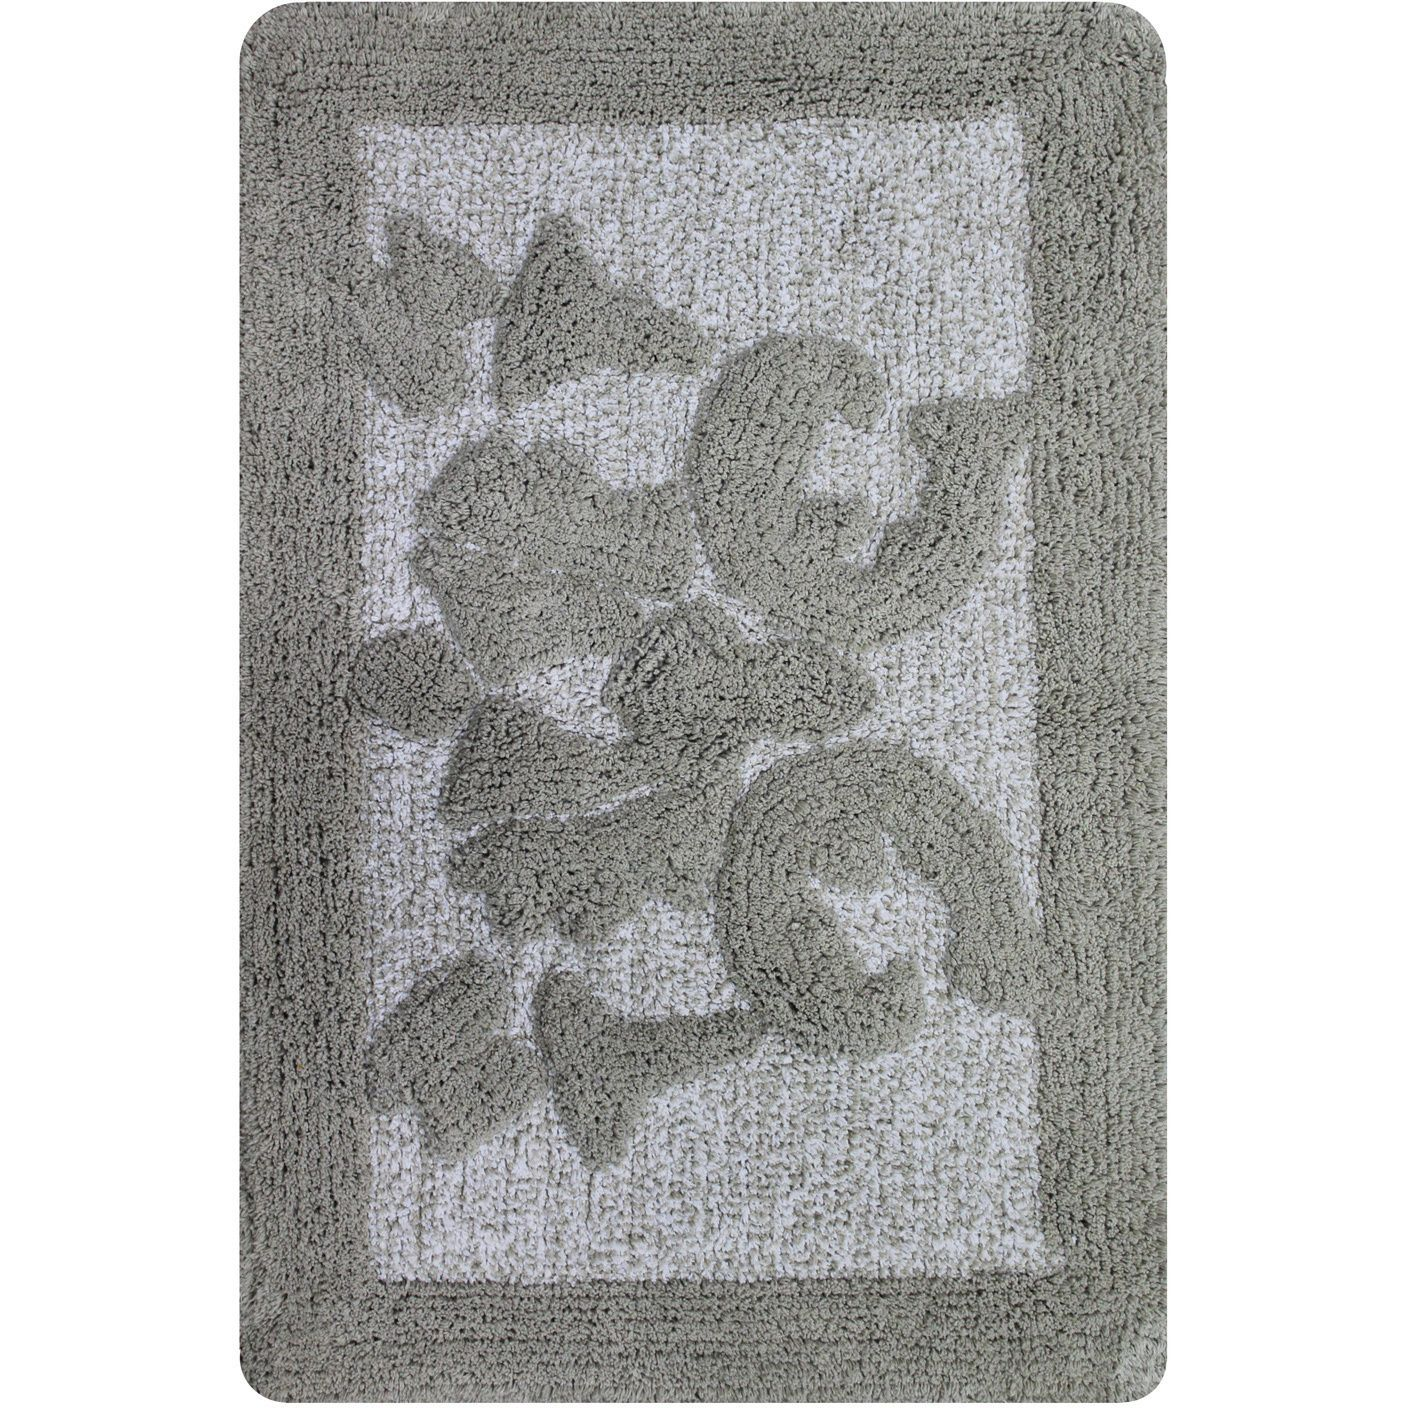 lakewood 20 x 30 bath rug | products, rugs and bath rugs